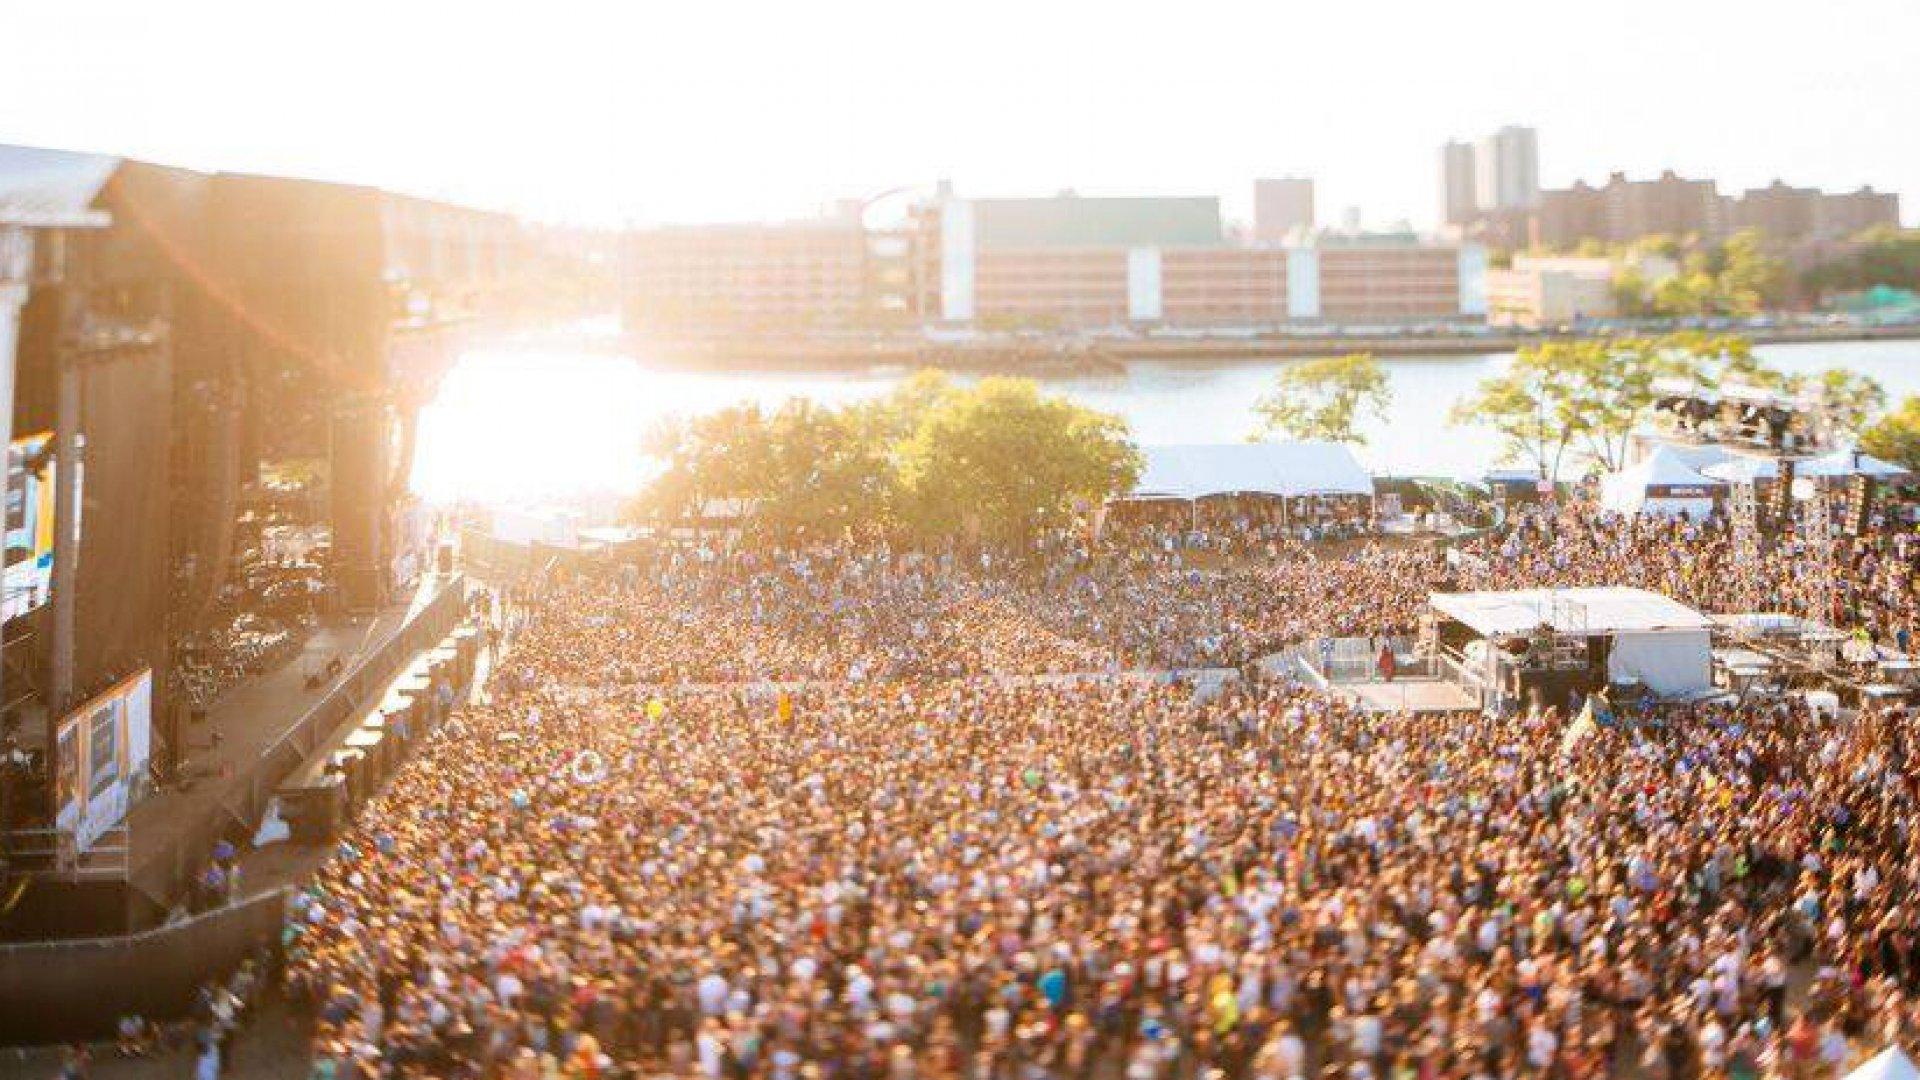 How These Entrepreneurs Built New York City's Biggest Music Festival From a Childhood Bedroom